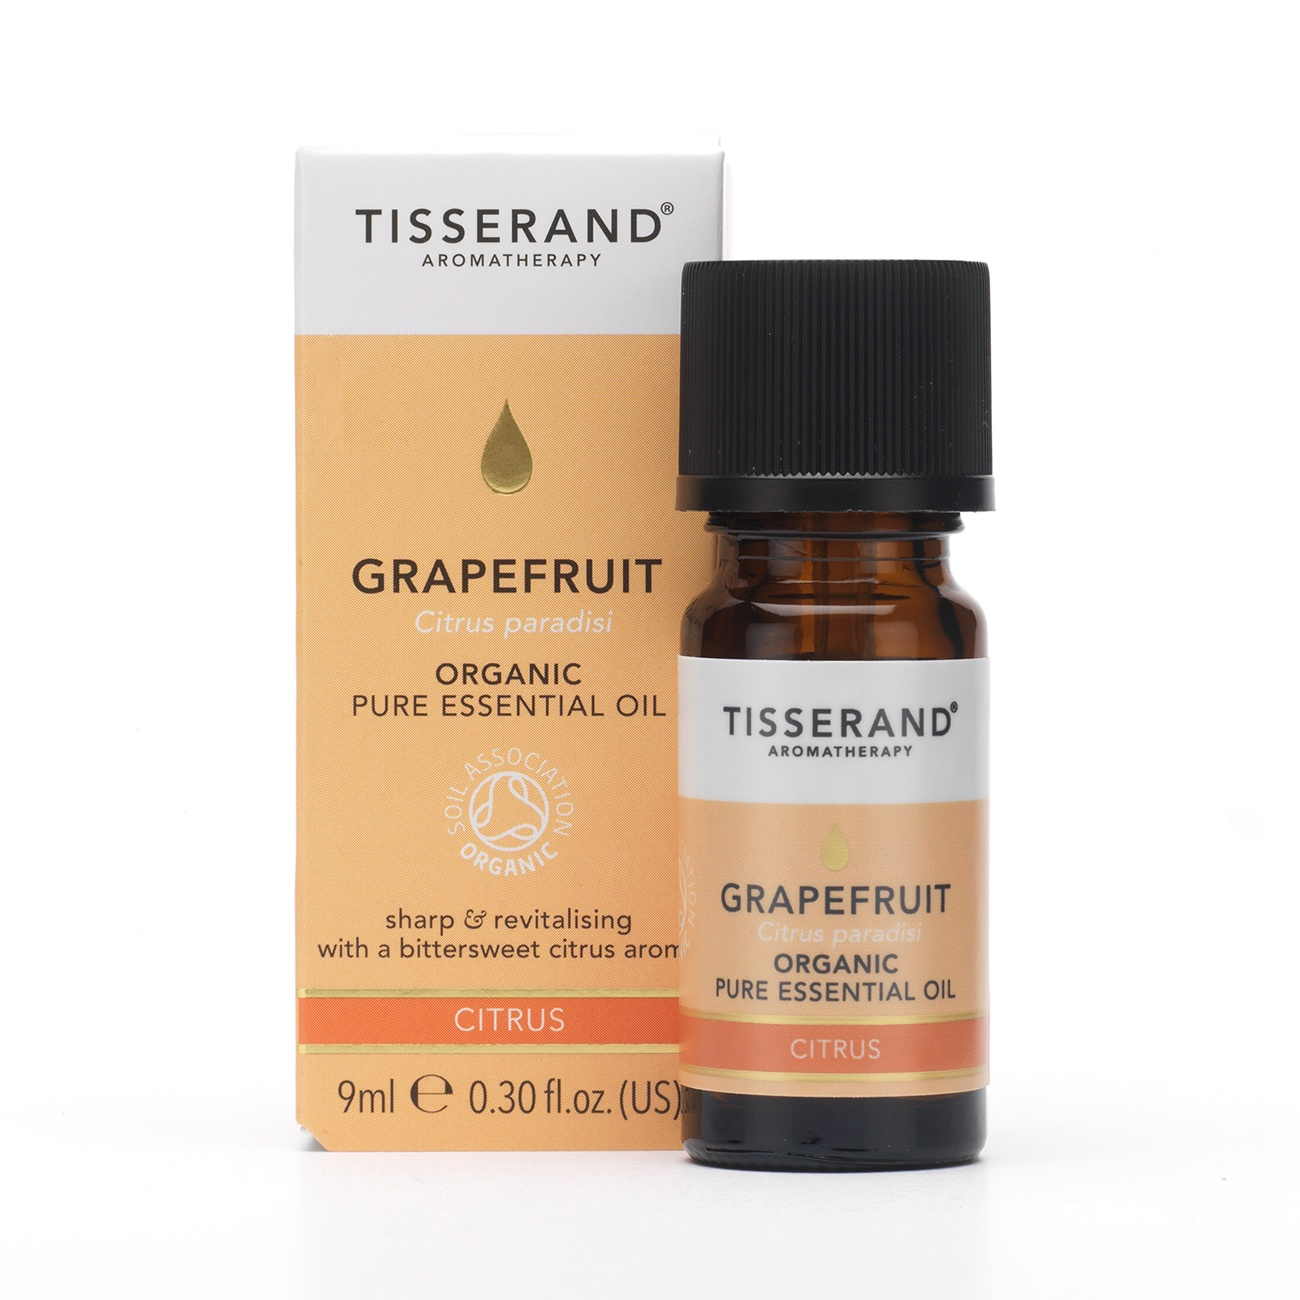 Tisserand Organic Grapefruit Essential Oil 9m